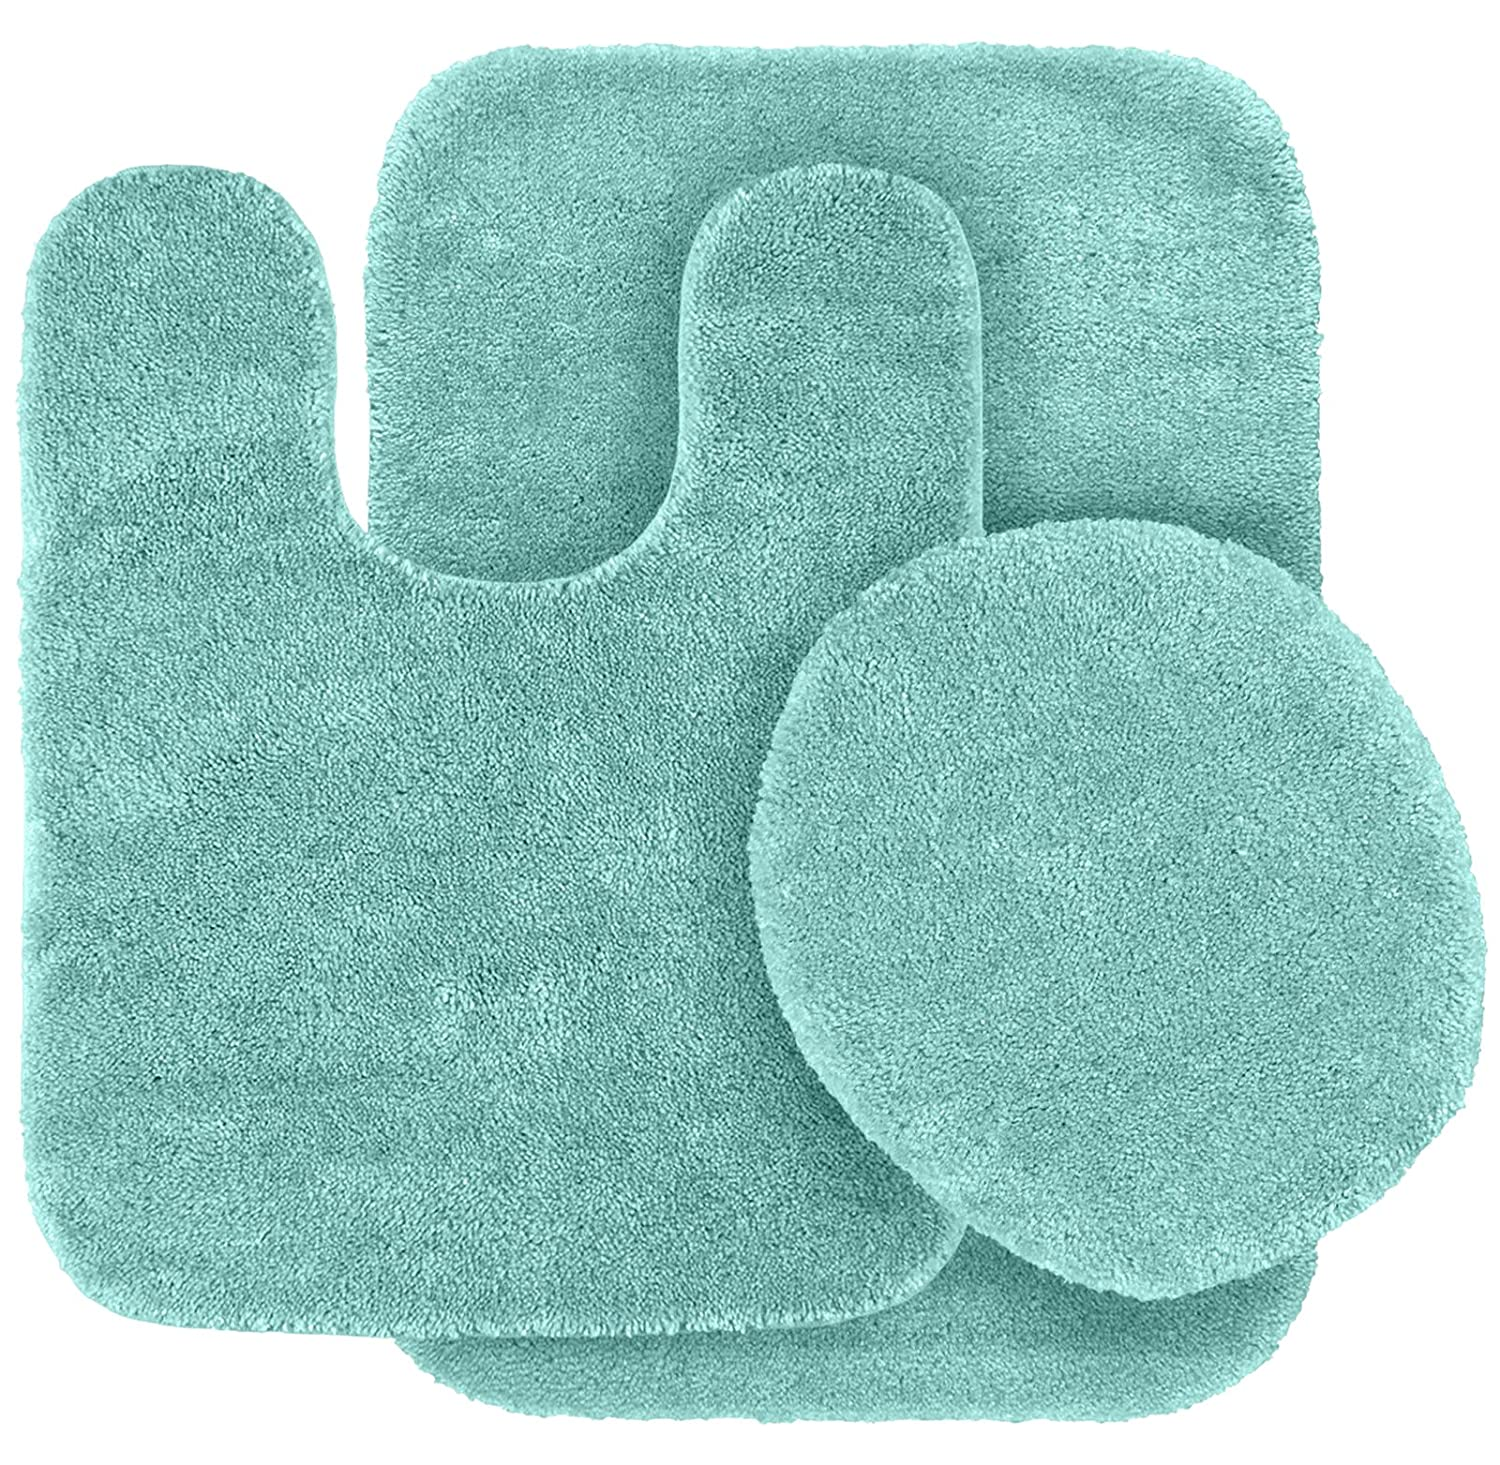 Amazon.com: Garland Rug 3 Piece Traditional Nylon Washable Bathroom Rug  Set, Seafoam: Home U0026 Kitchen